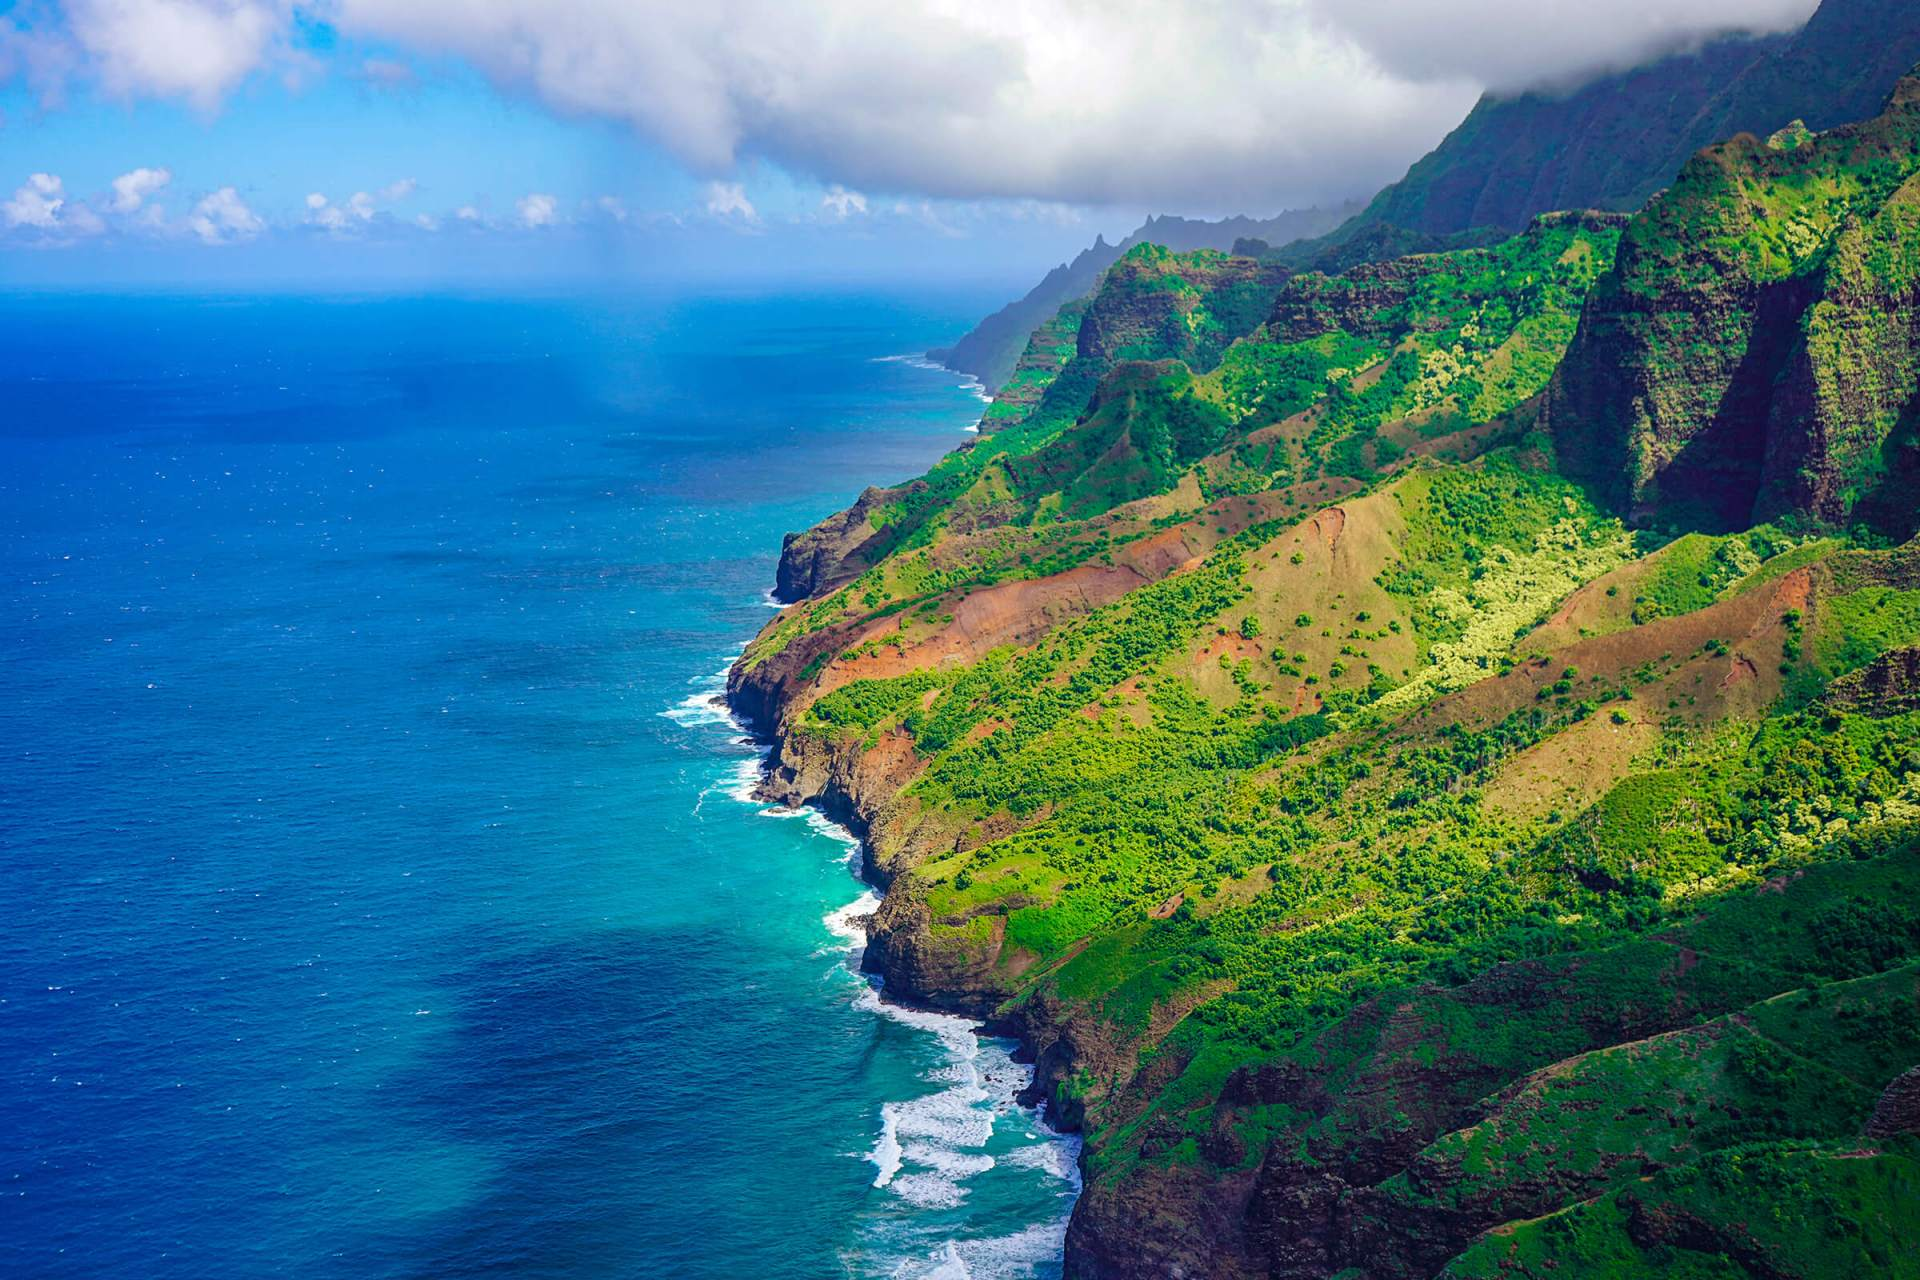 React104 flies over the Nā Pali coast on the island of Kauai.